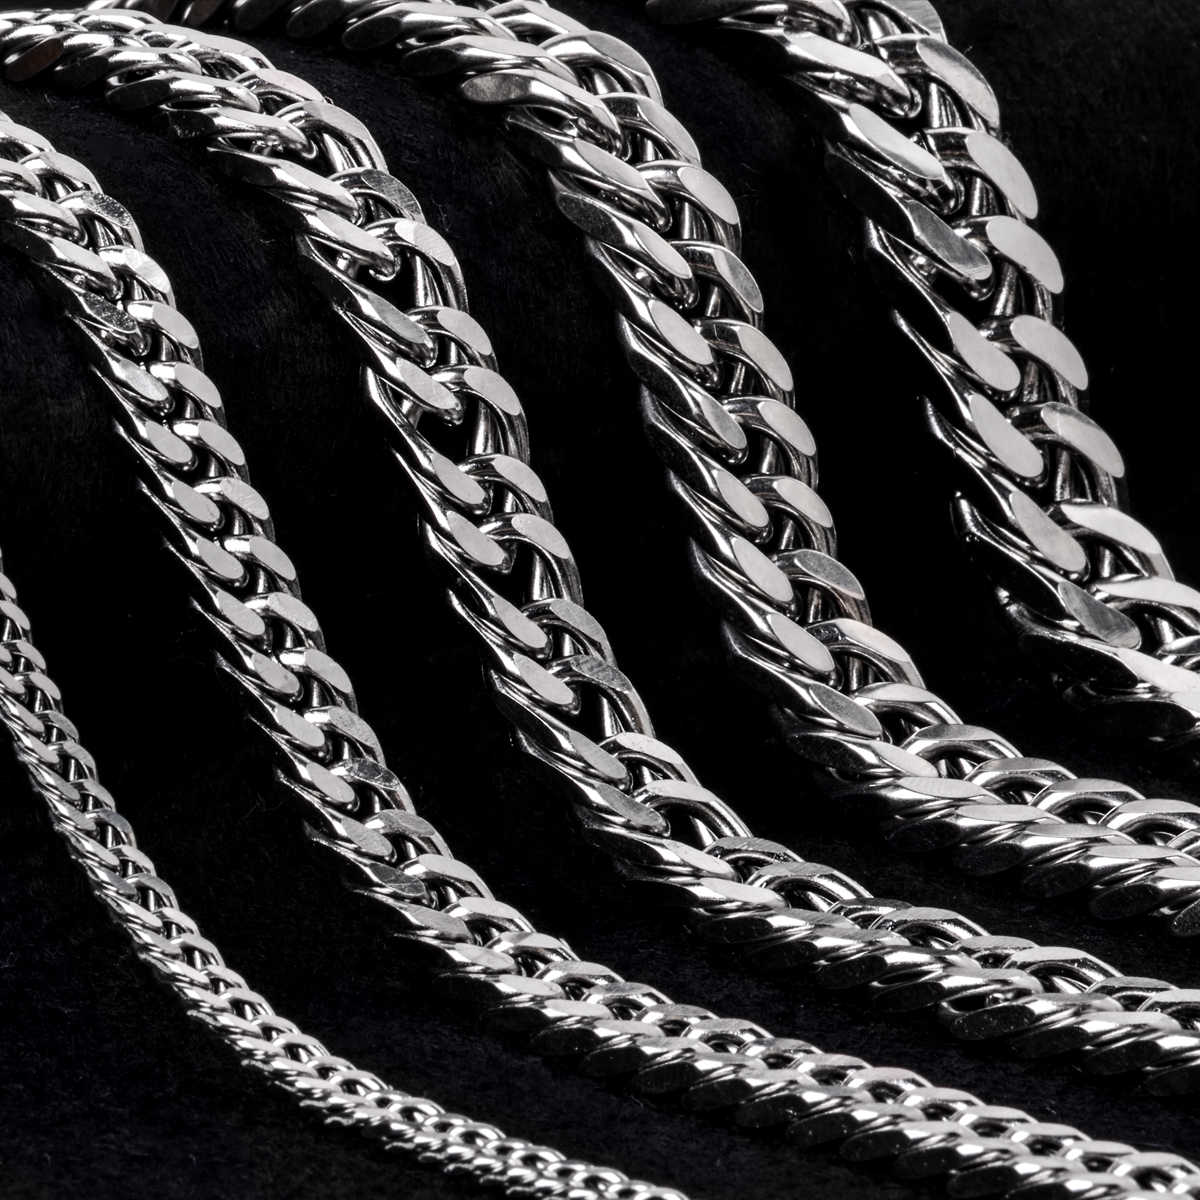 Stainless Steel Bracelet Punk Vintage Hip Hop Chain Jewelry Silve Bracelet For Men Male Bangle Cuff Chain Bracelet Shellhard